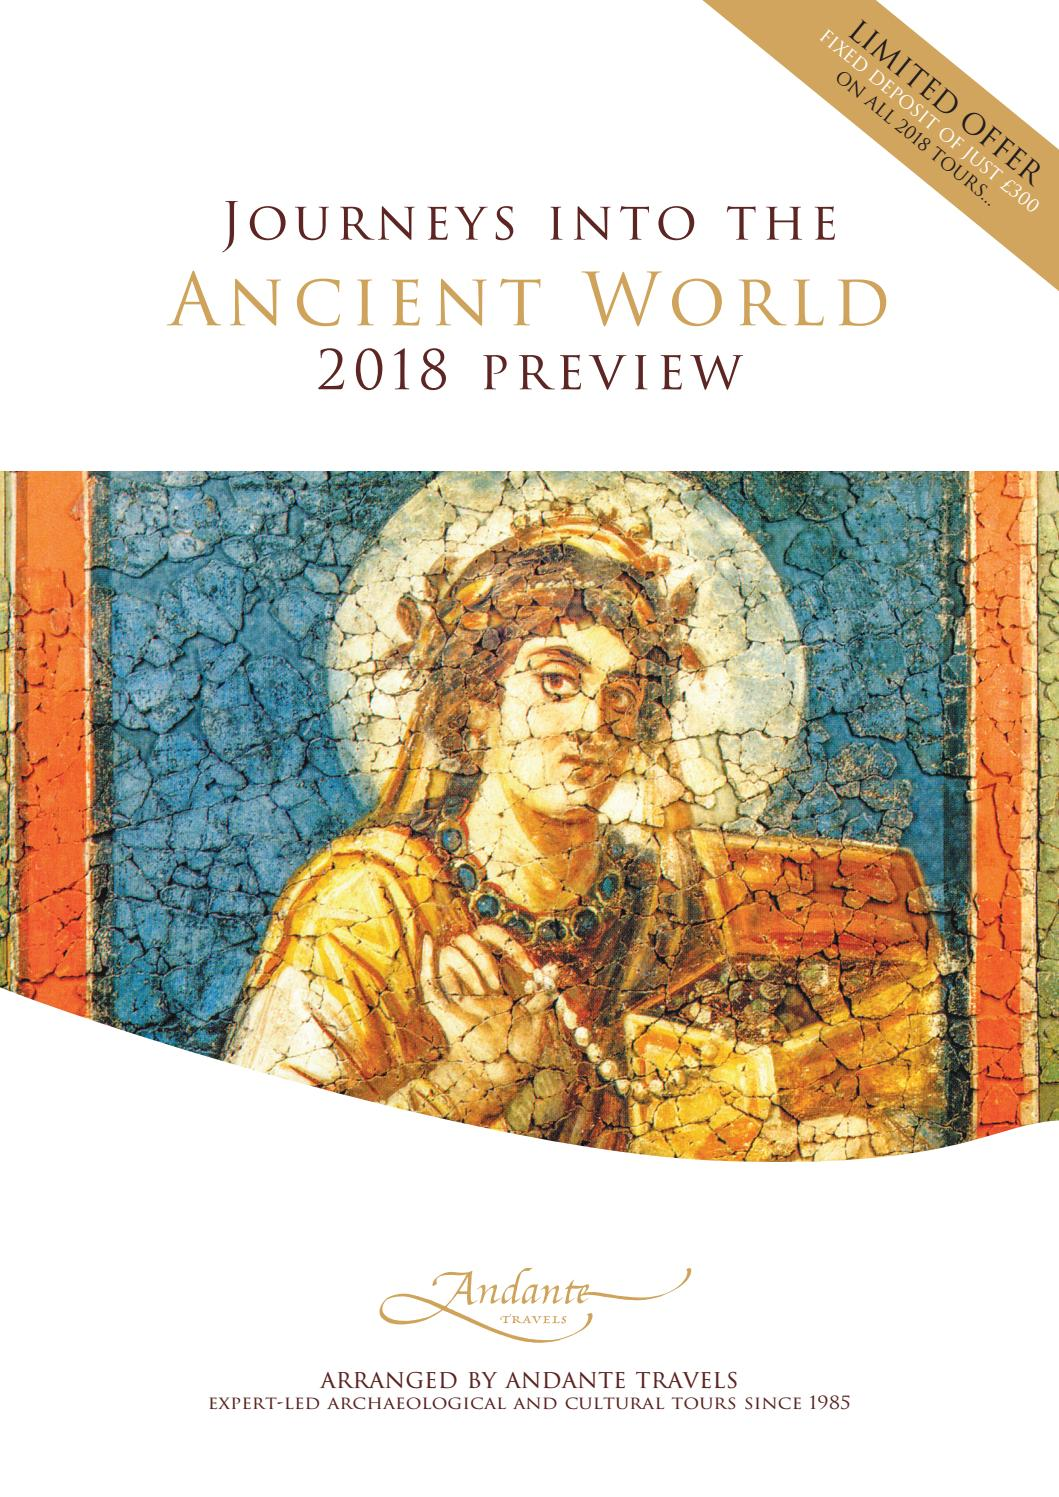 Andante Travels 2018 Preview Brochure by Specialist Journeys